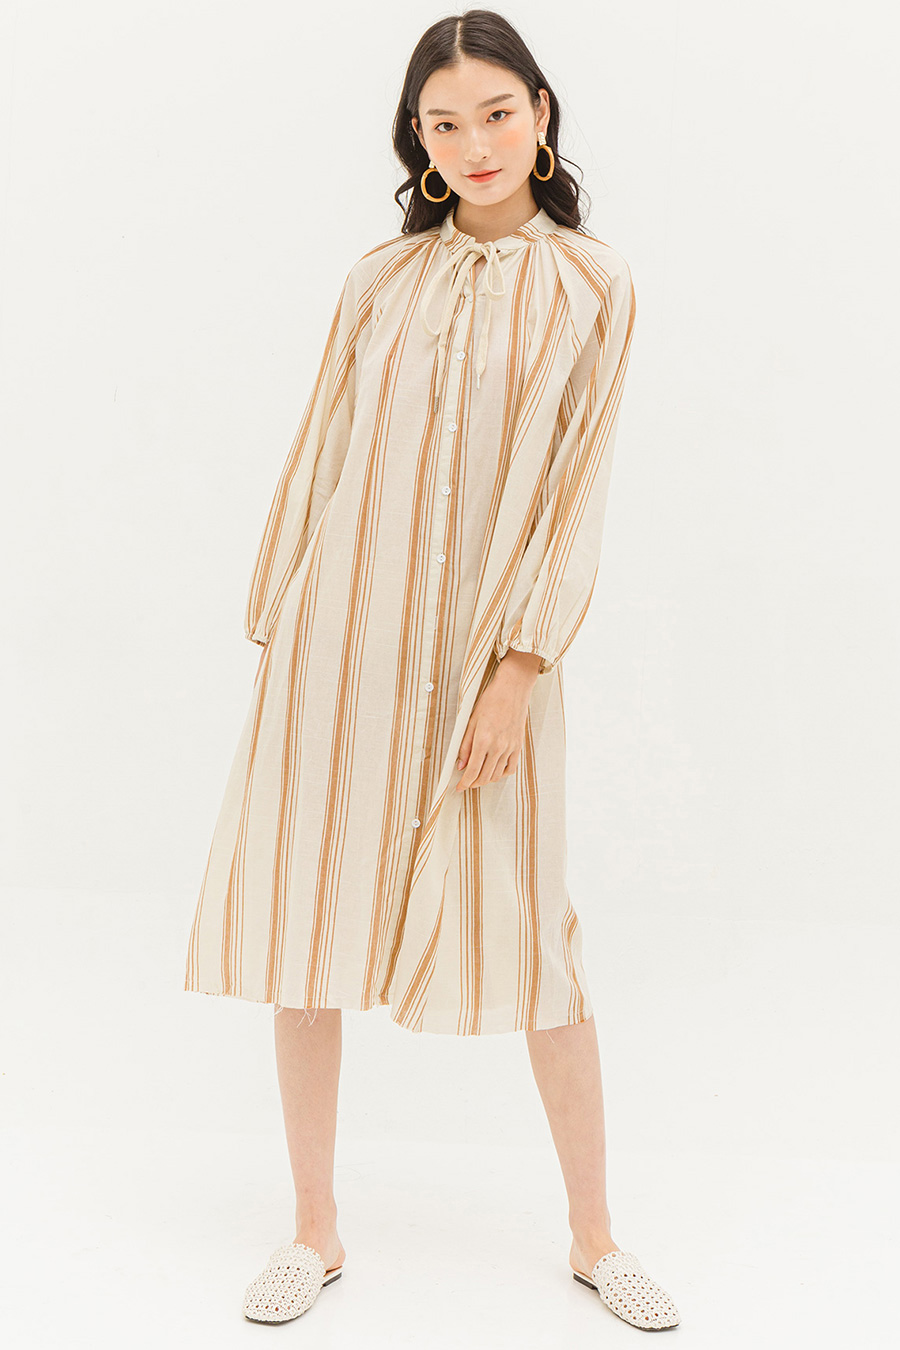 INEZ DRESS - SAHARA STRIPE